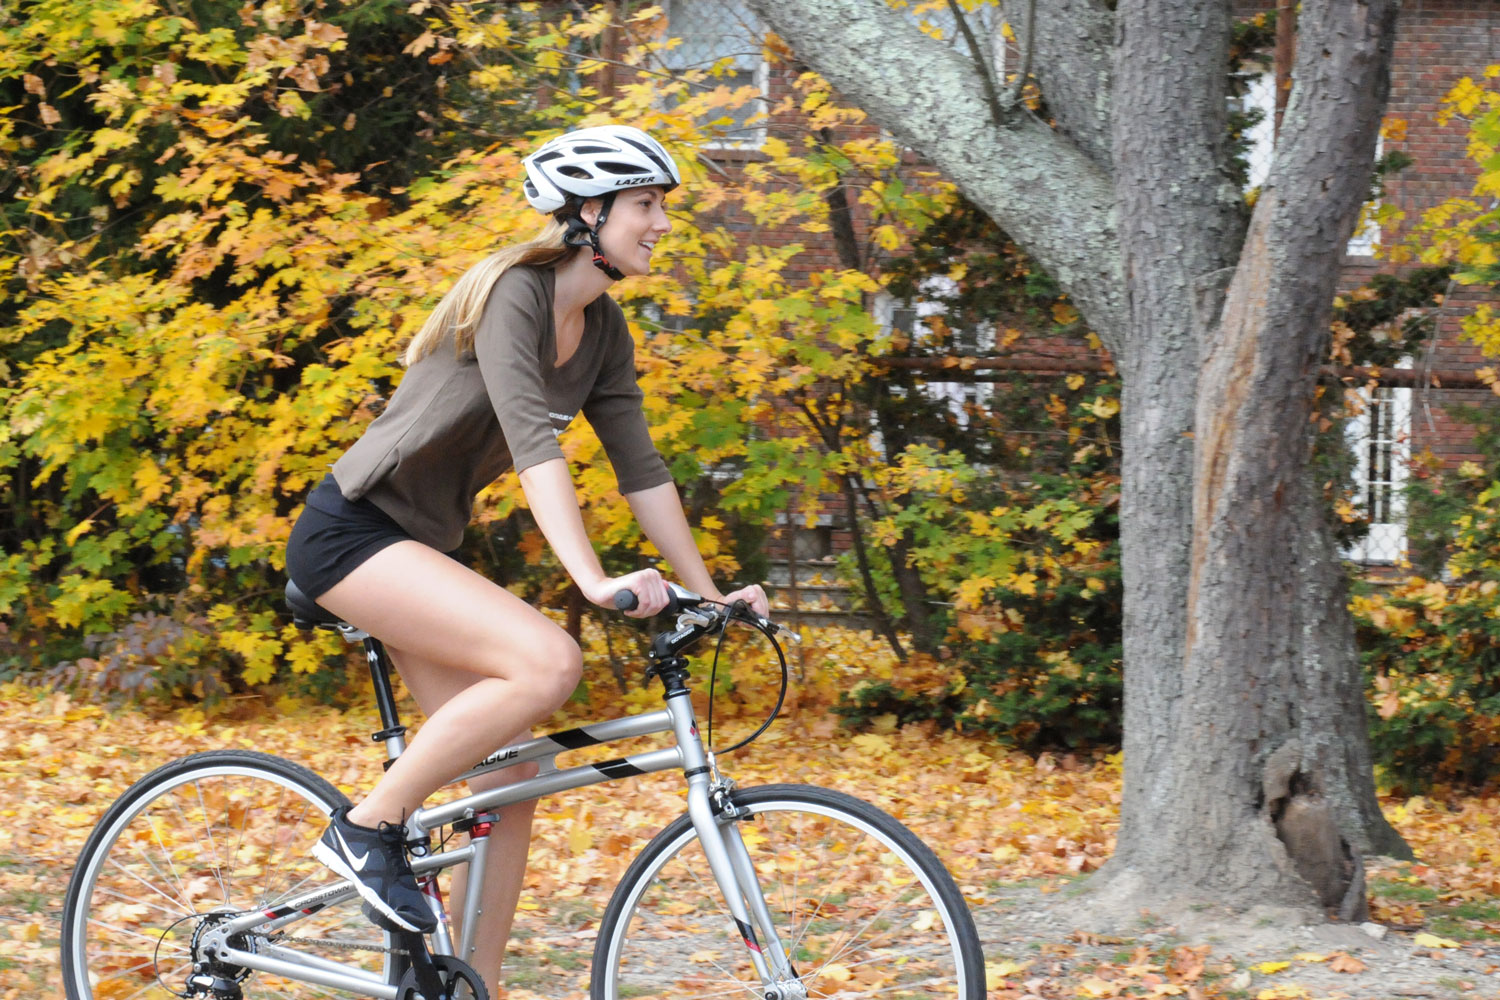 Montague Crosstown woman riding in autumn